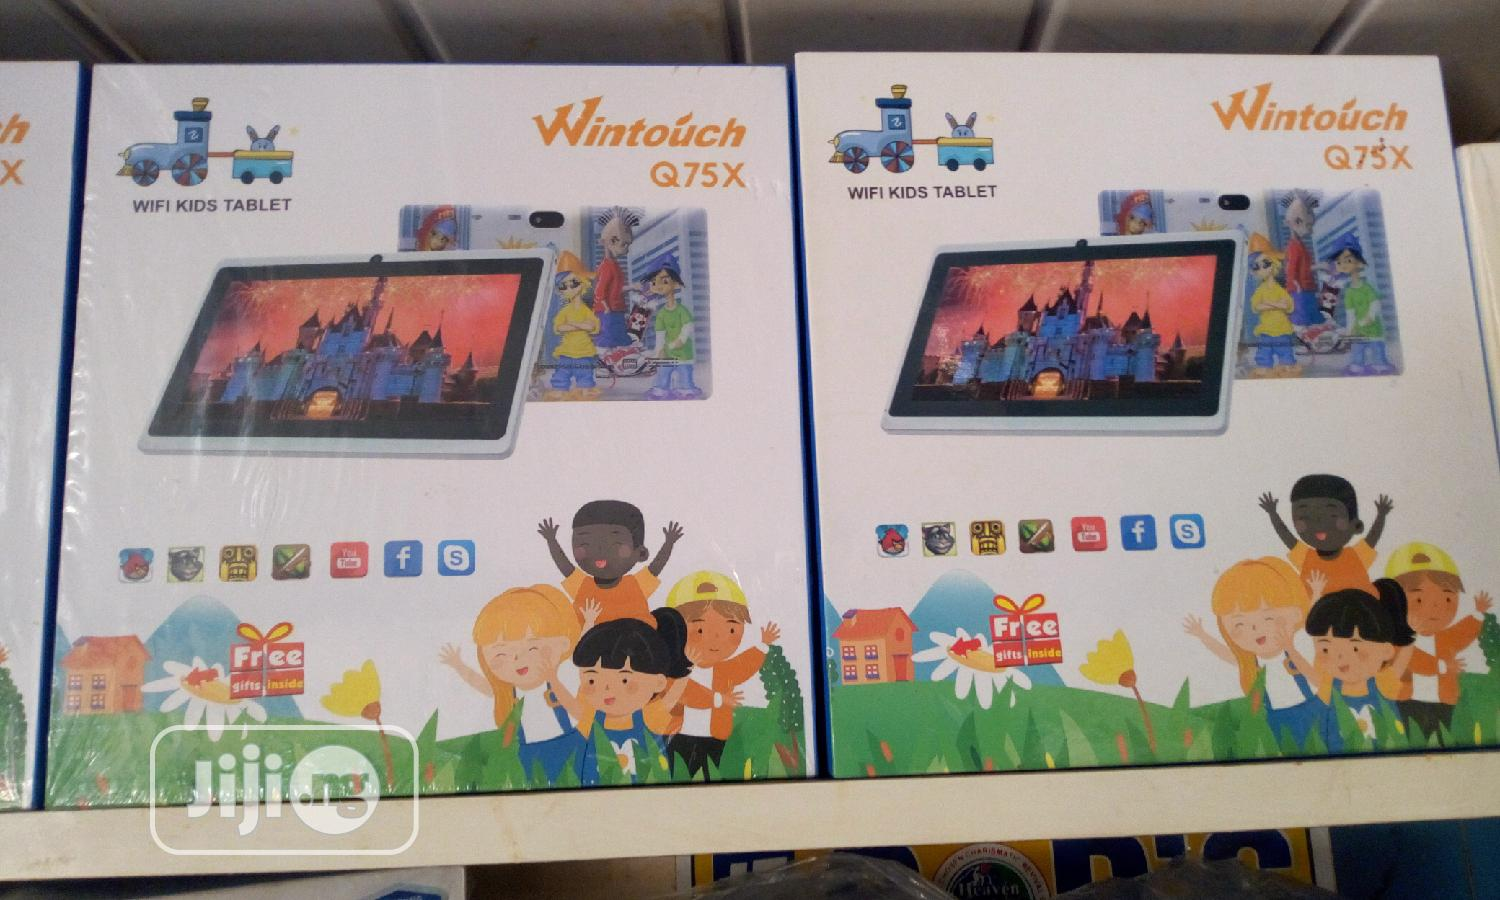 New Wintouch M702S 4 GB